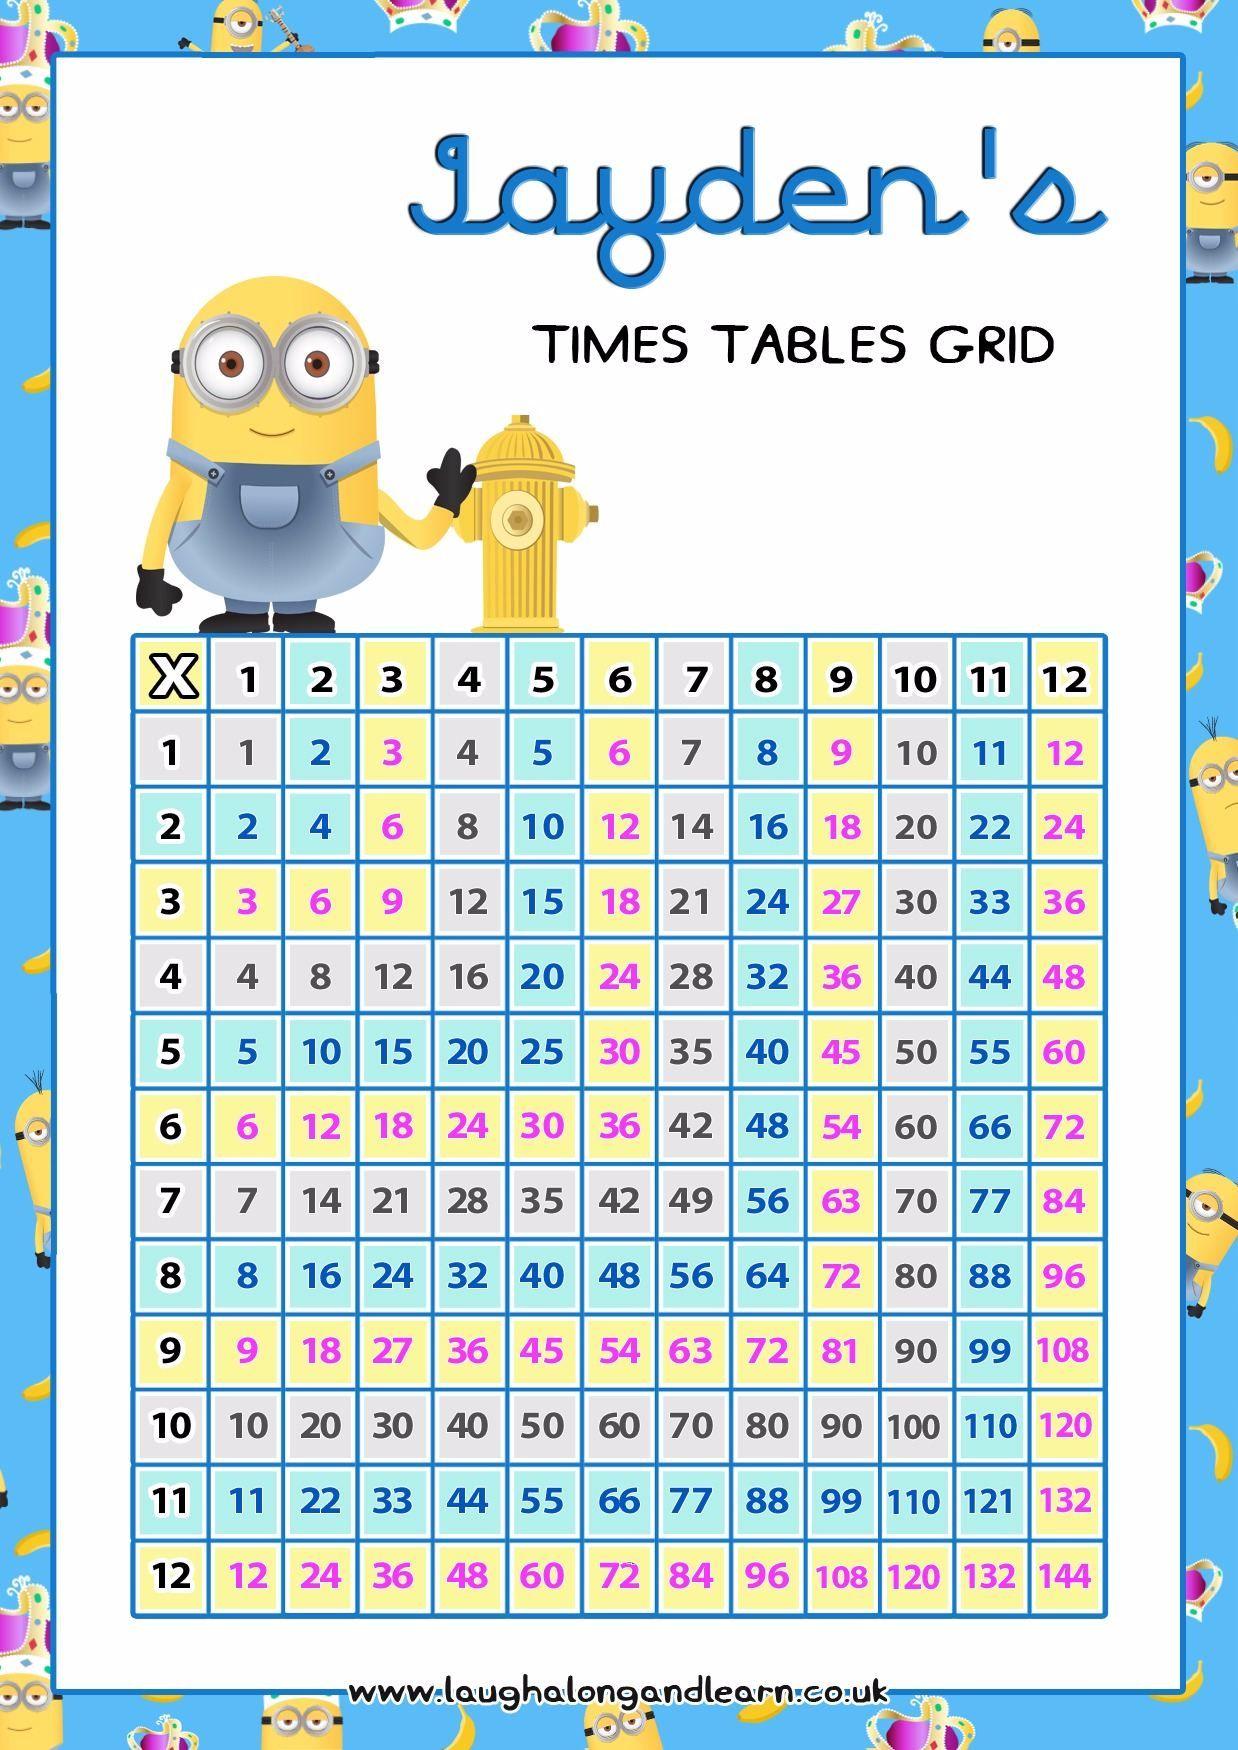 Free multiplication grid personalised times tables grids 20 multiplication tables charts formatted for quick printing geenschuldenfo Image collections